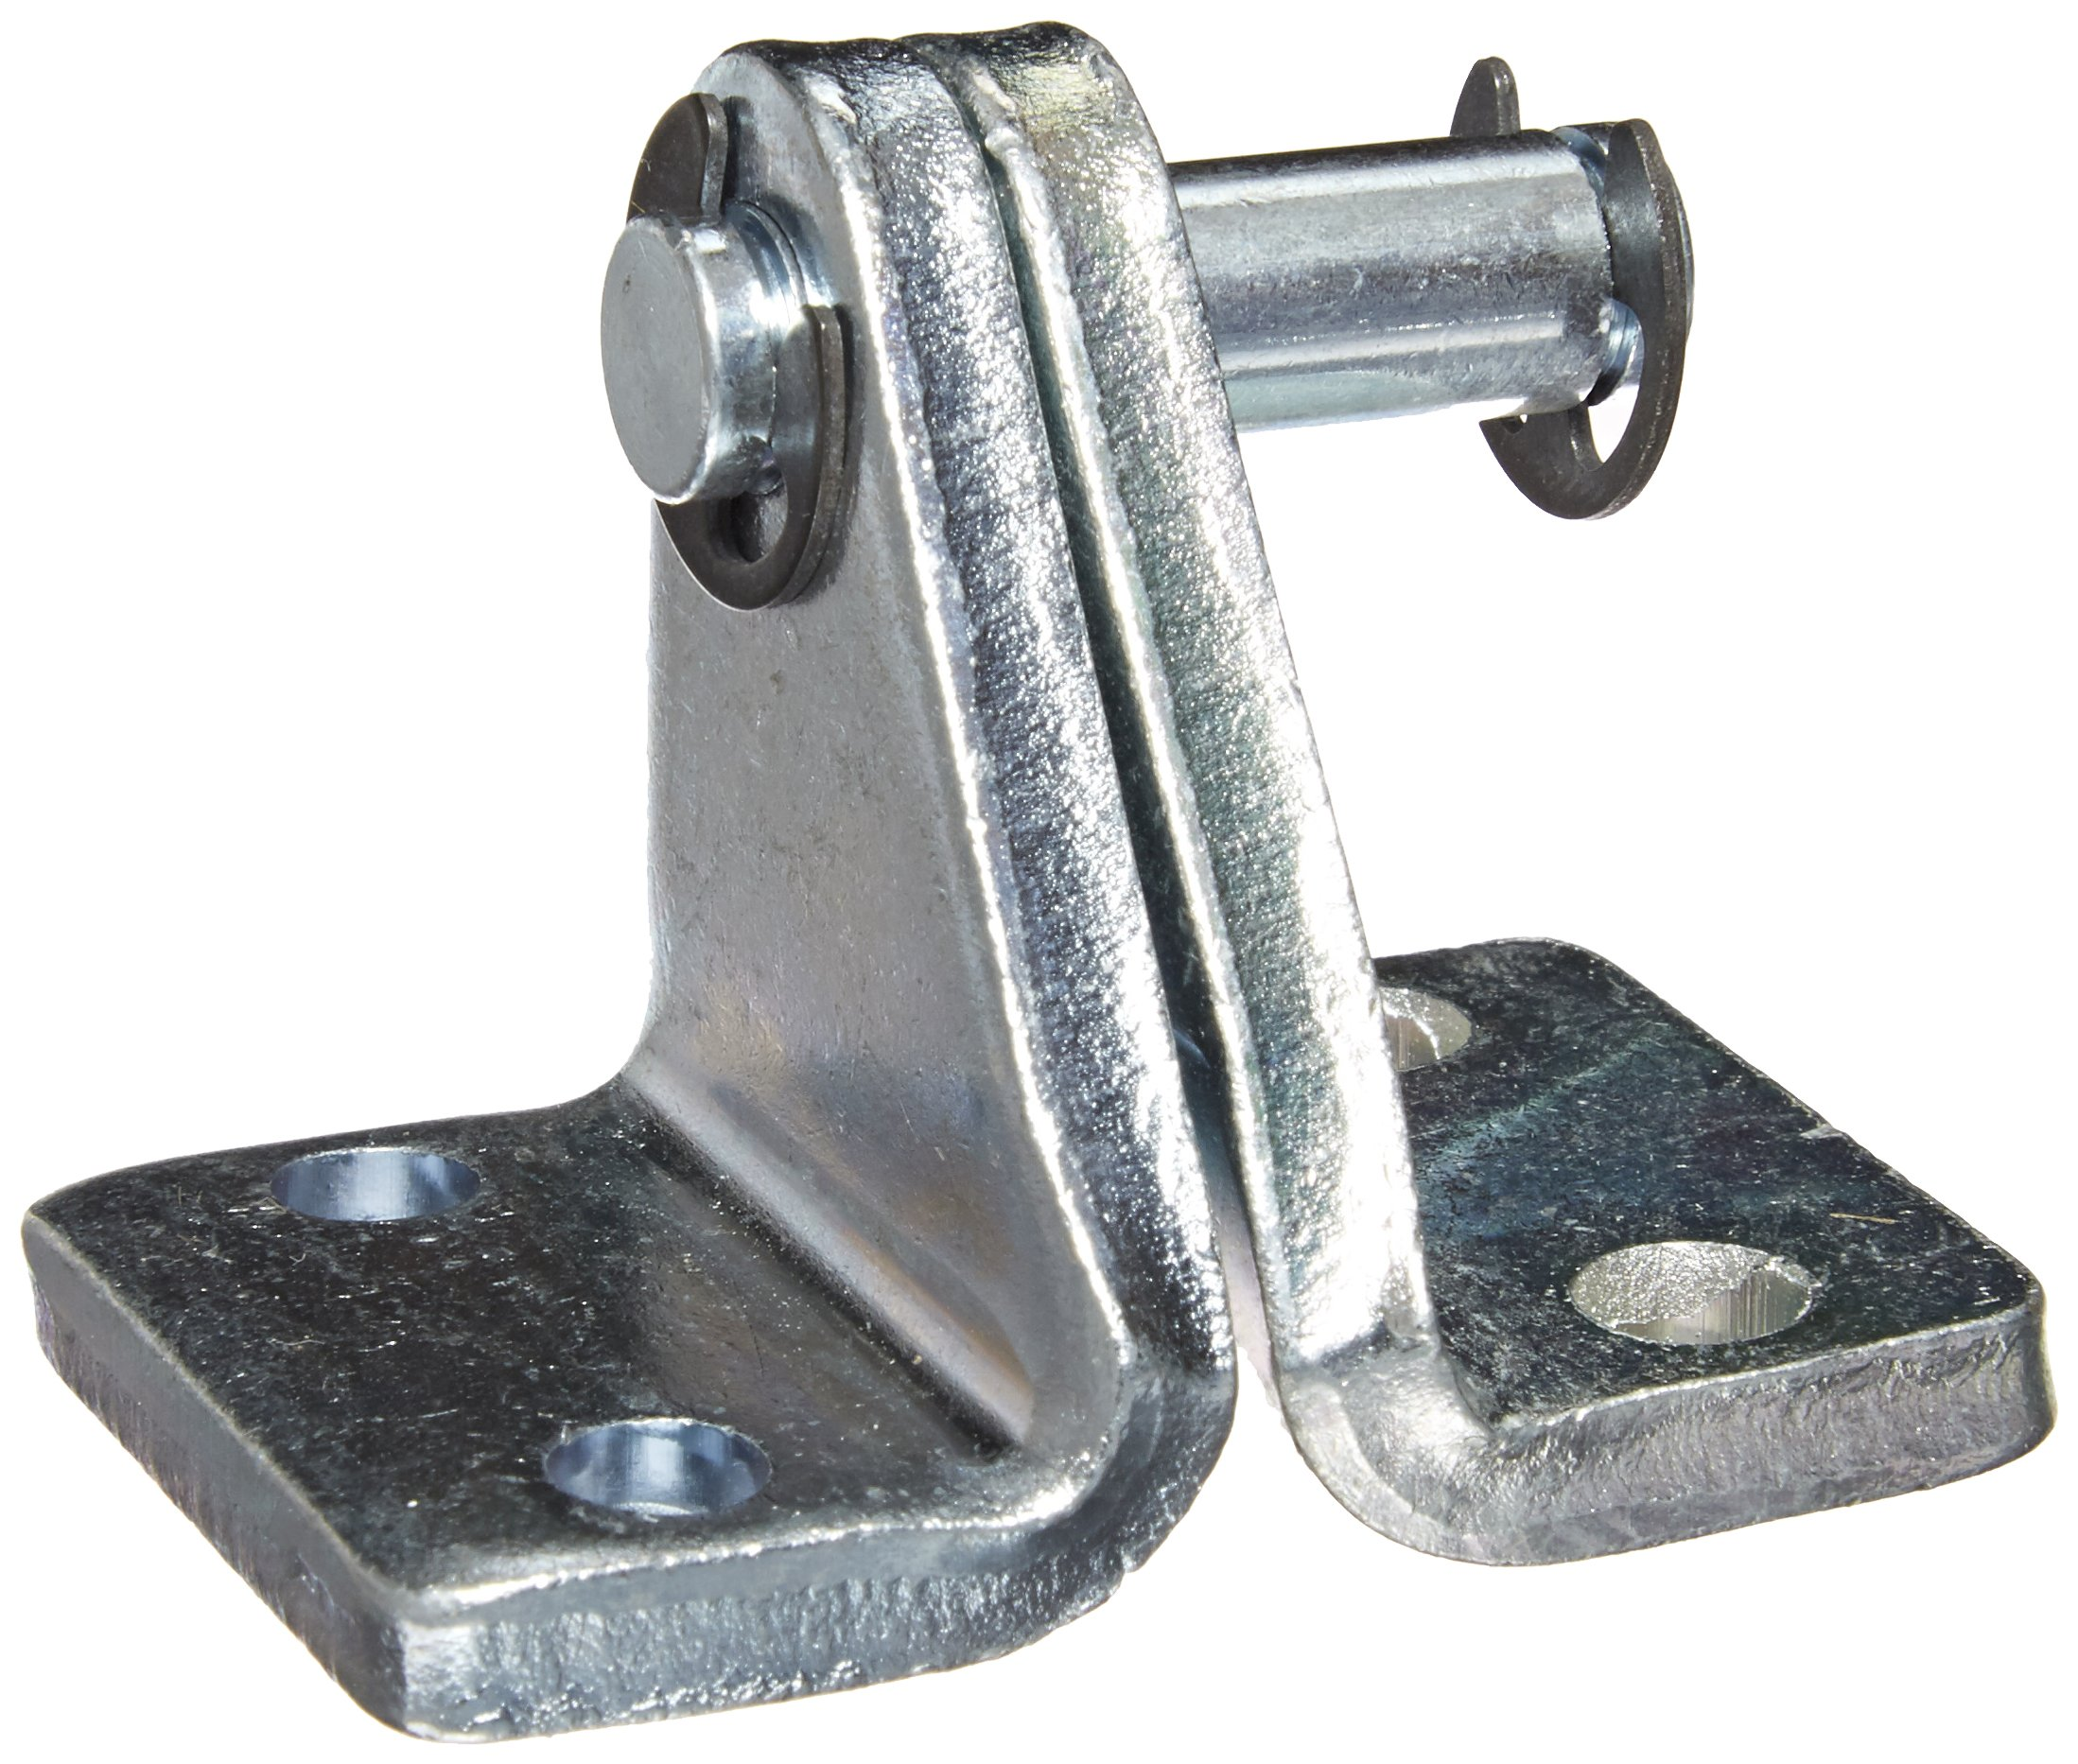 Parker L071320400  Pivot Bracket, Universal or Rear Pivot Mount for 1 1/2'', 1 3/4'' Bore